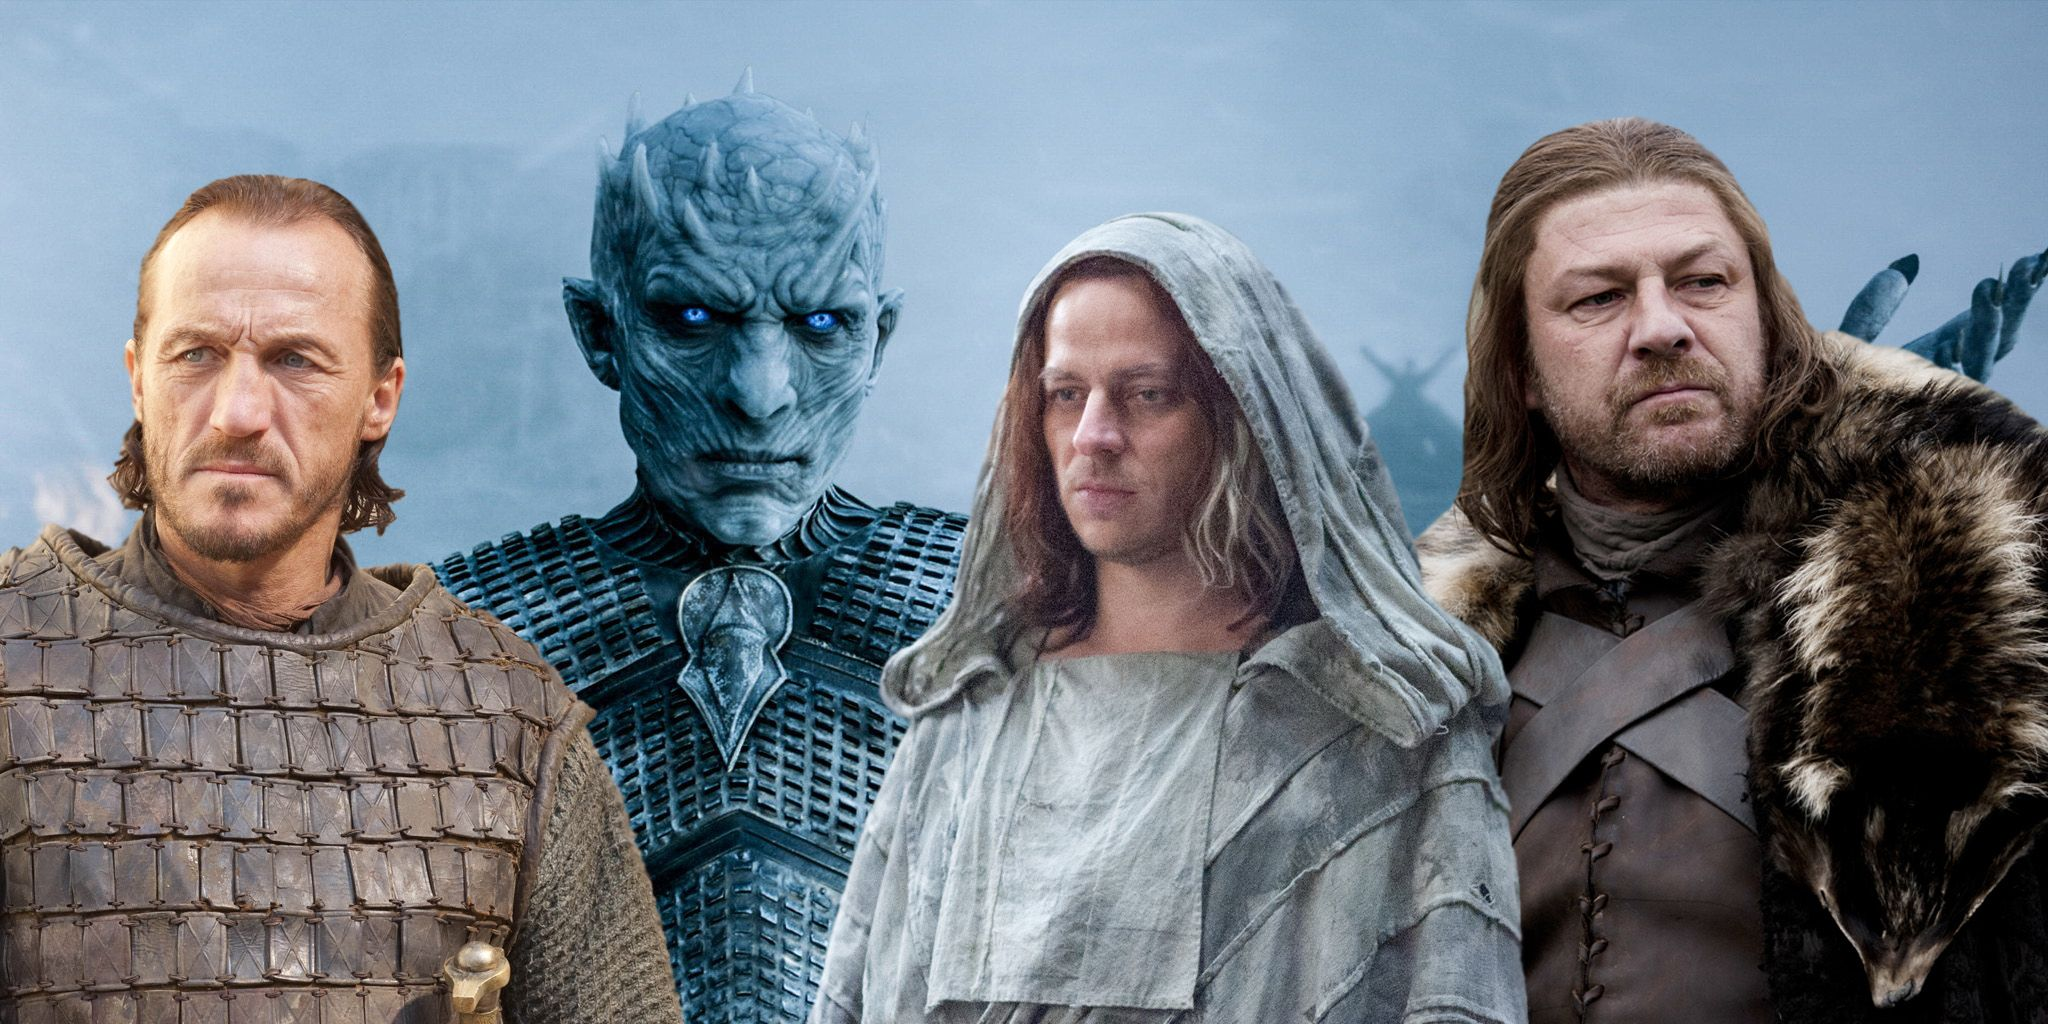 PHOTOSHOP: Game of Thrones